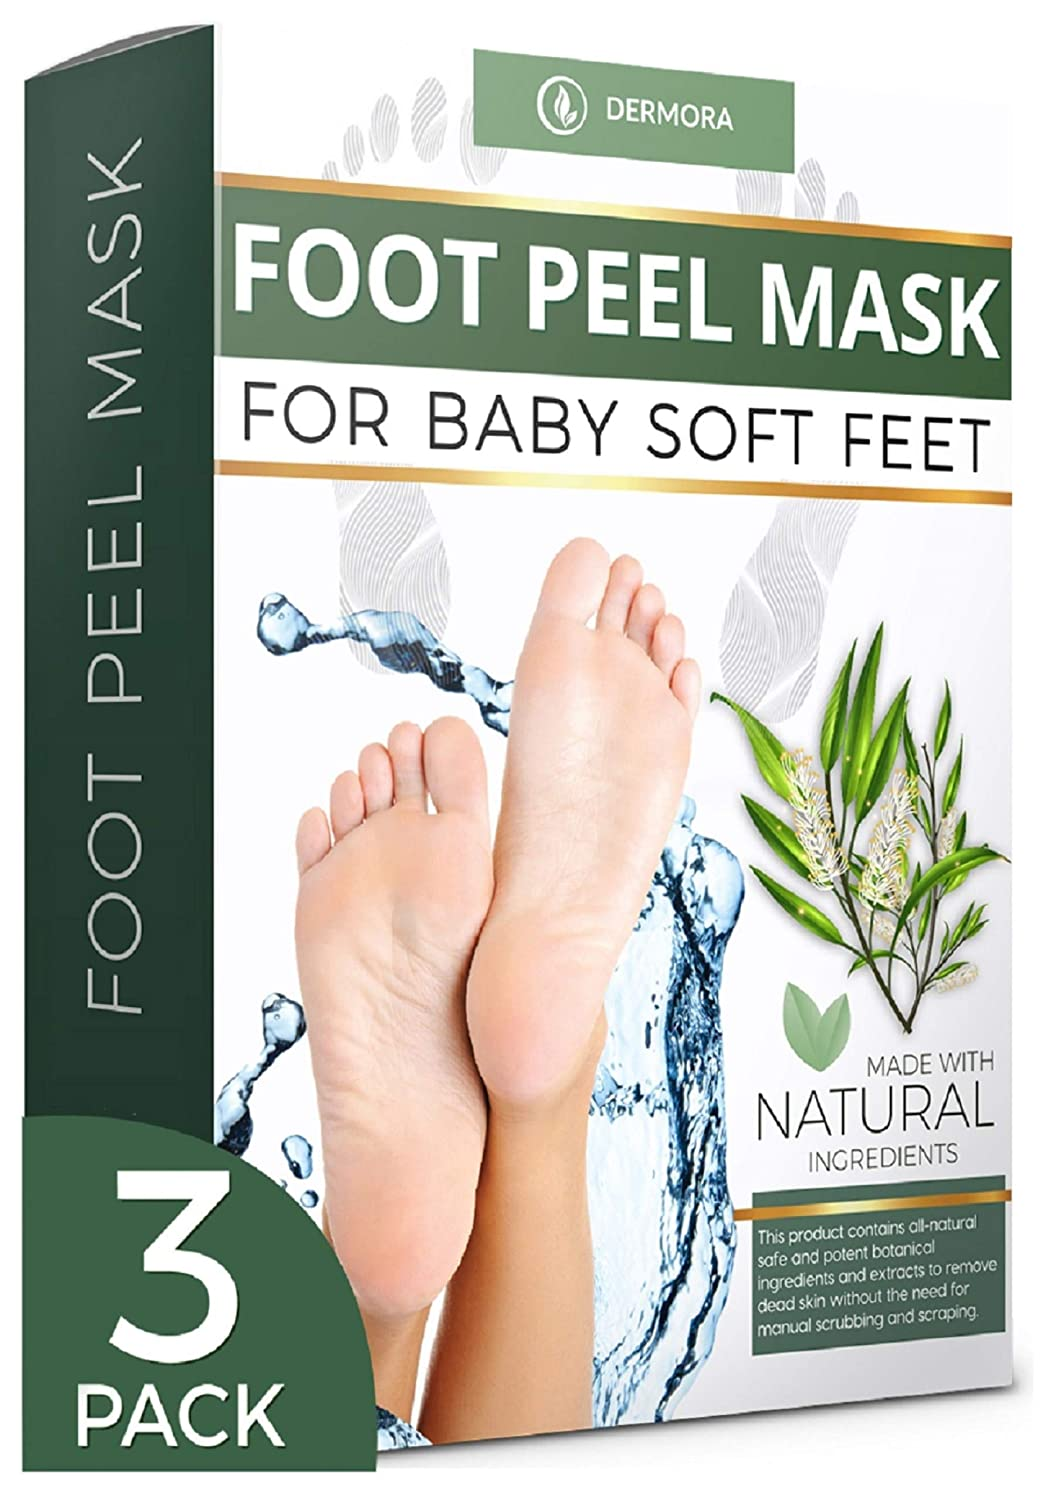 Tea Tree Foot Peel Mask - 3 Pack - For Cracked Heels, Dead Skin and Calluses - Make Your Feet Baby Soft Get Smooth Silky Skin - Removes Rough Heels Dry Skin - Natural Treatment